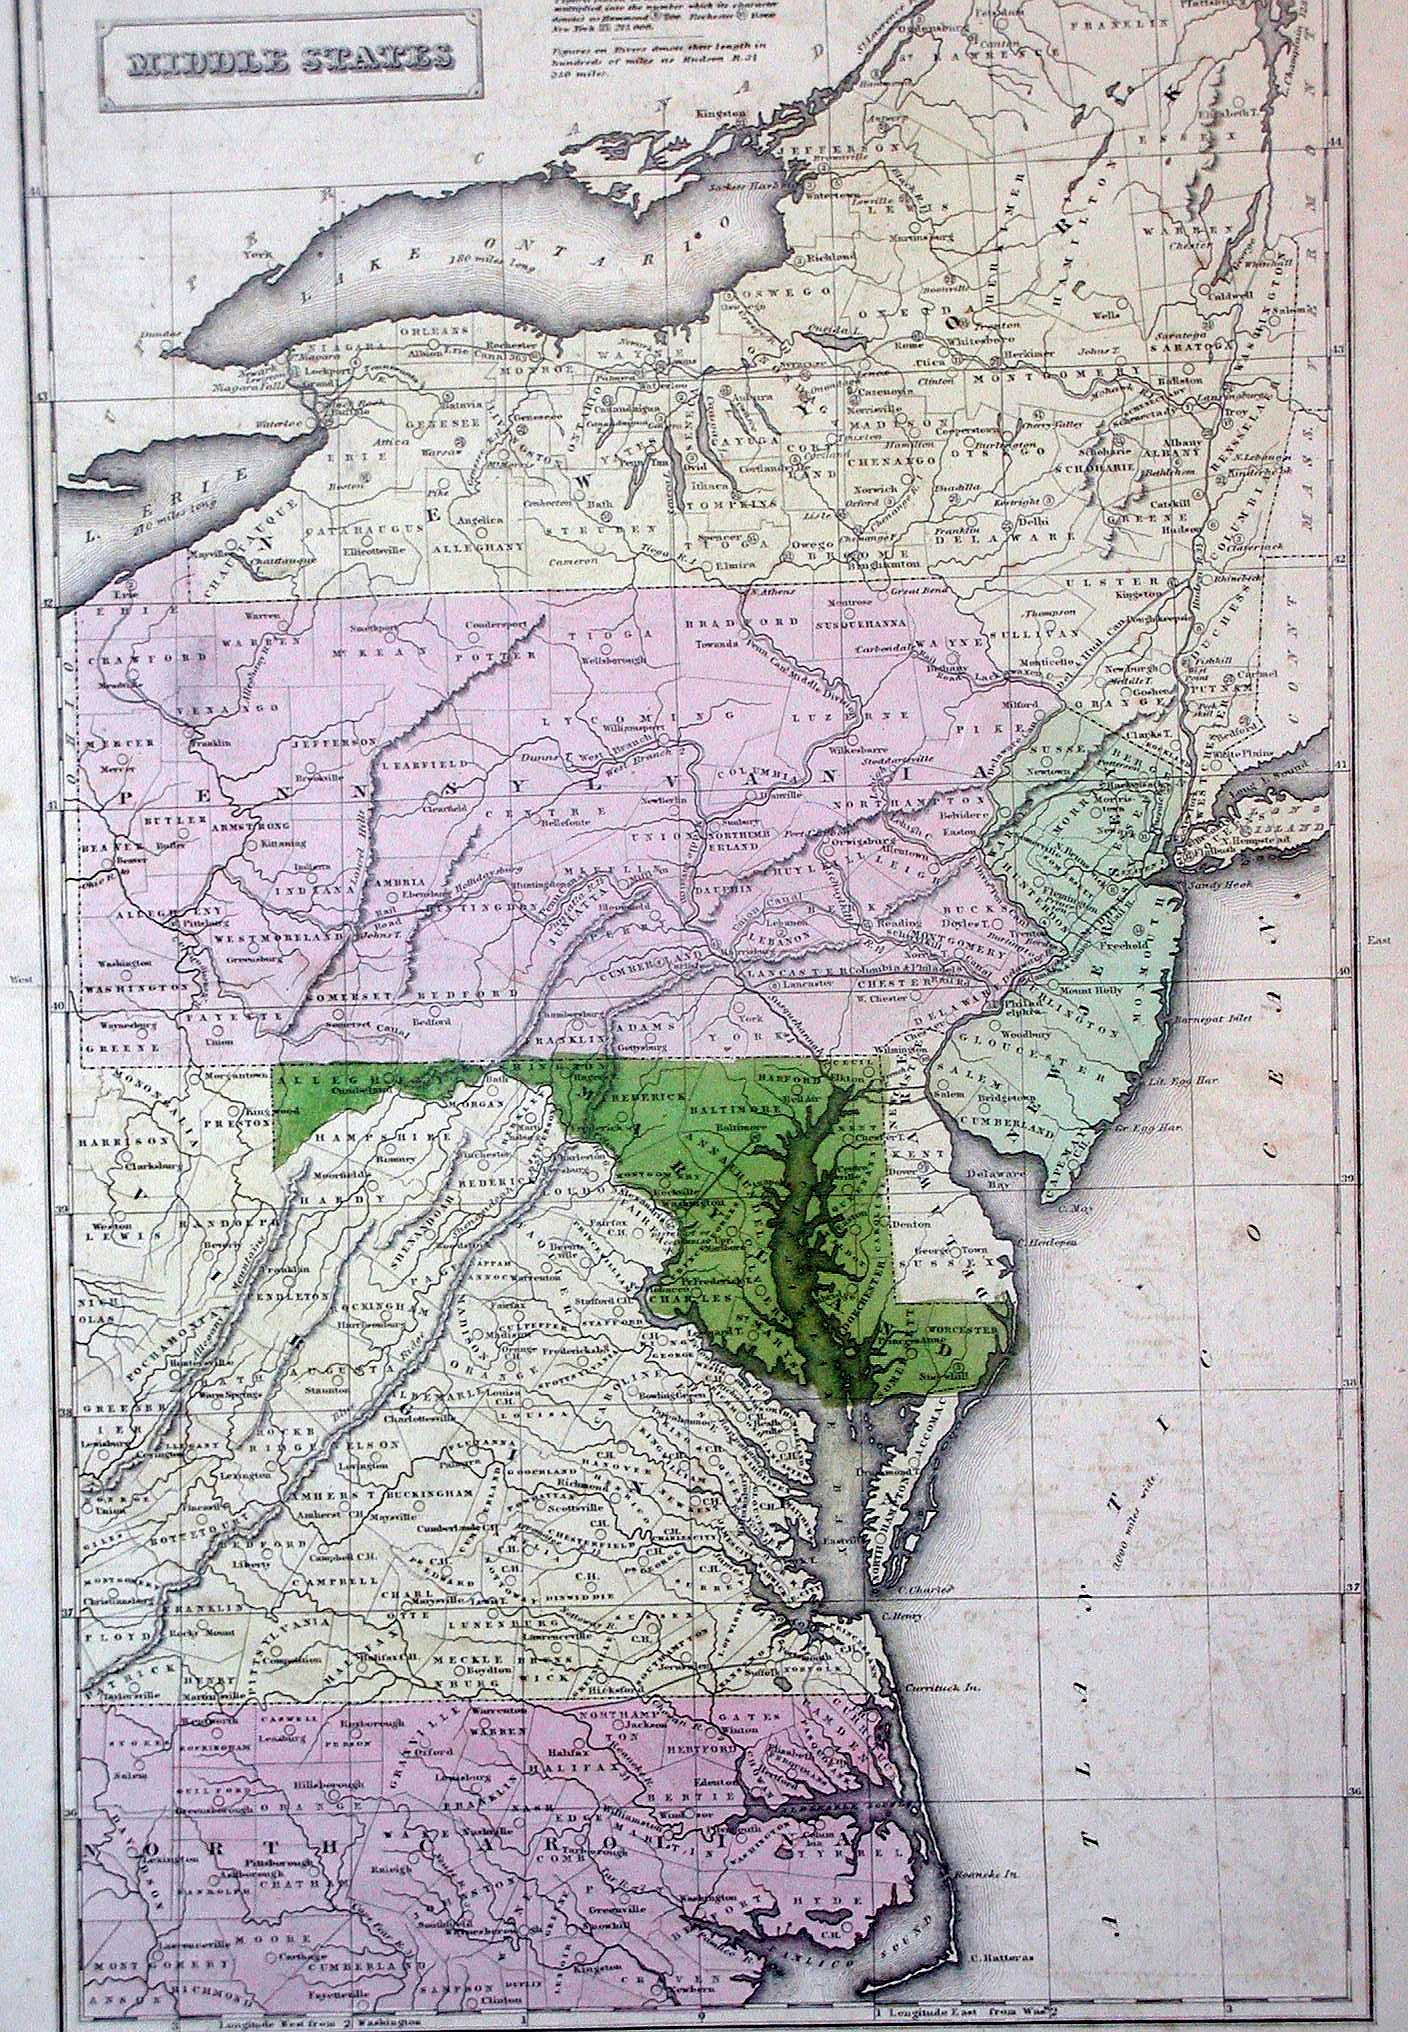 This School Atlas Map Shows Pennsylvania New York New Jersey Maryland Delaware And The Eastern Parts Of Virginia And North Carolina And Is Similar To